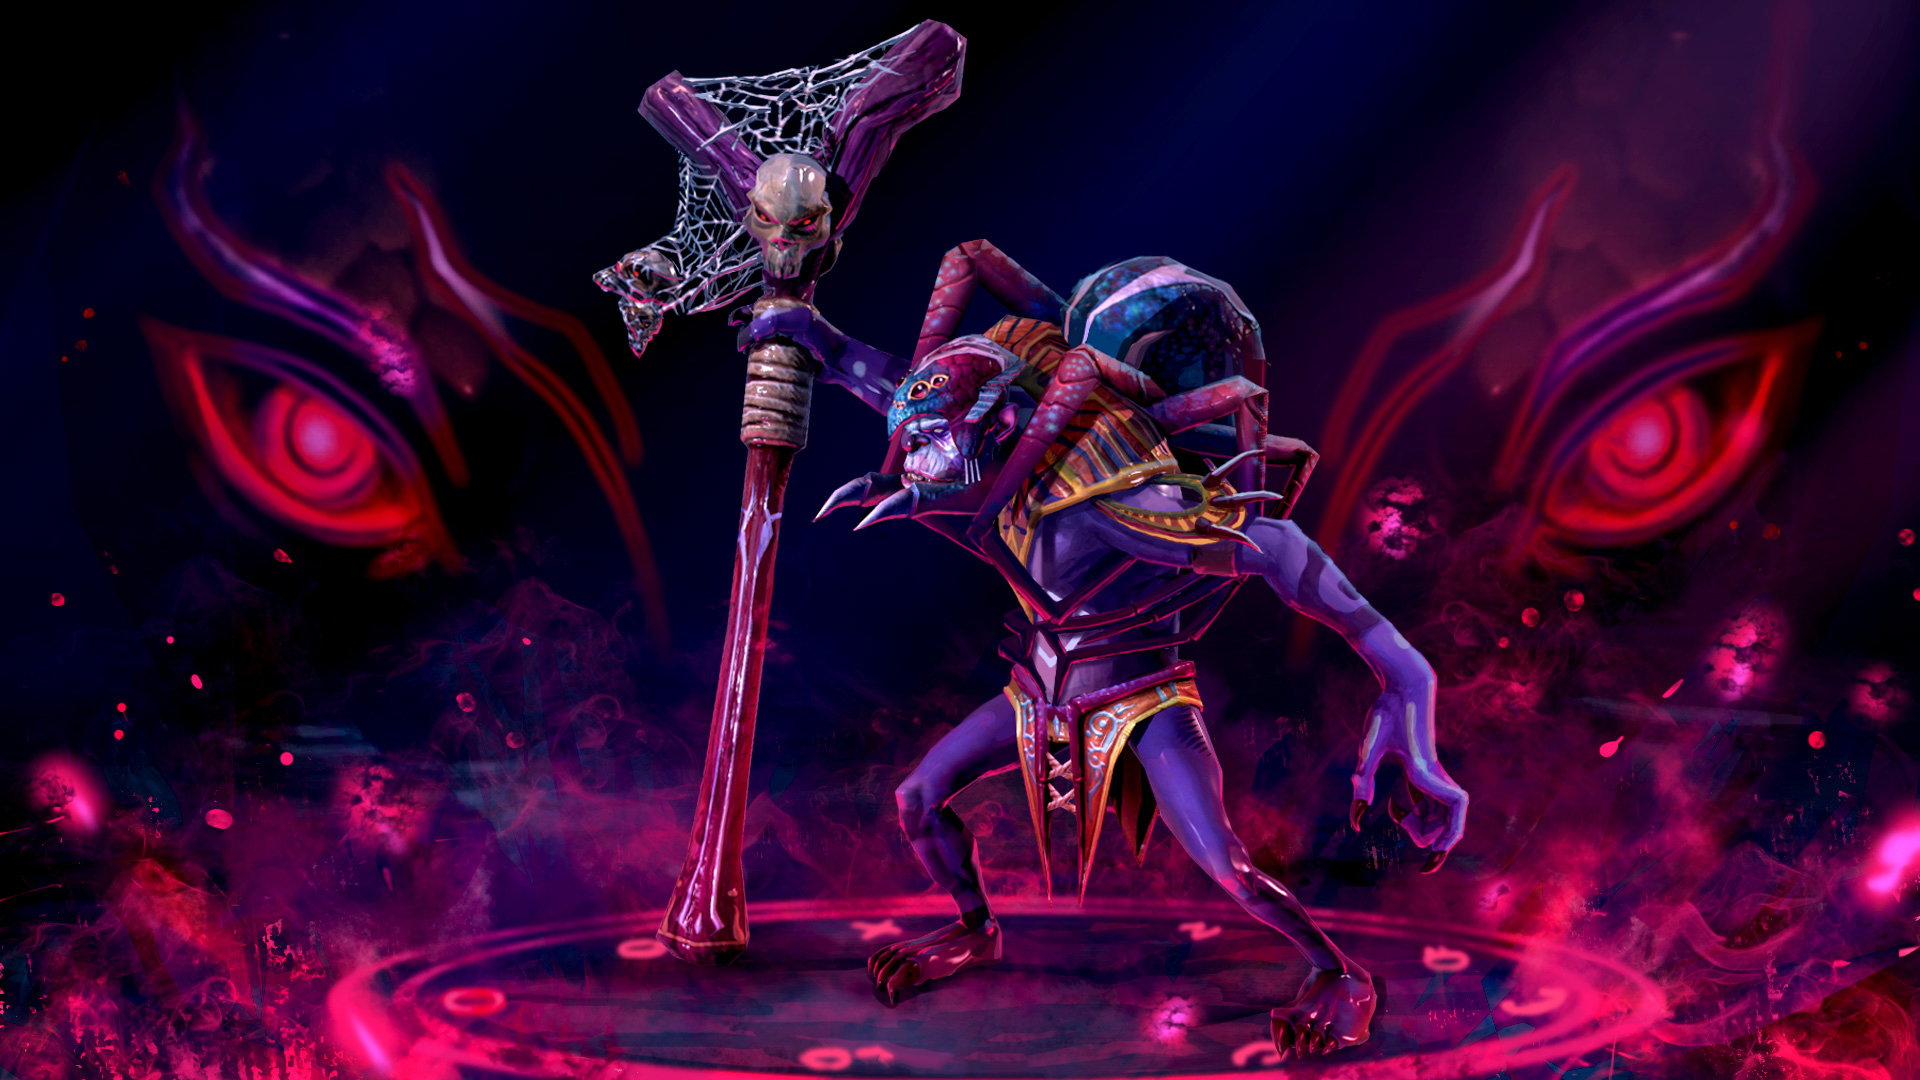 Picture DOTA 2 Witch Doctor Skulls sorcery Mage Staff 1920x1080